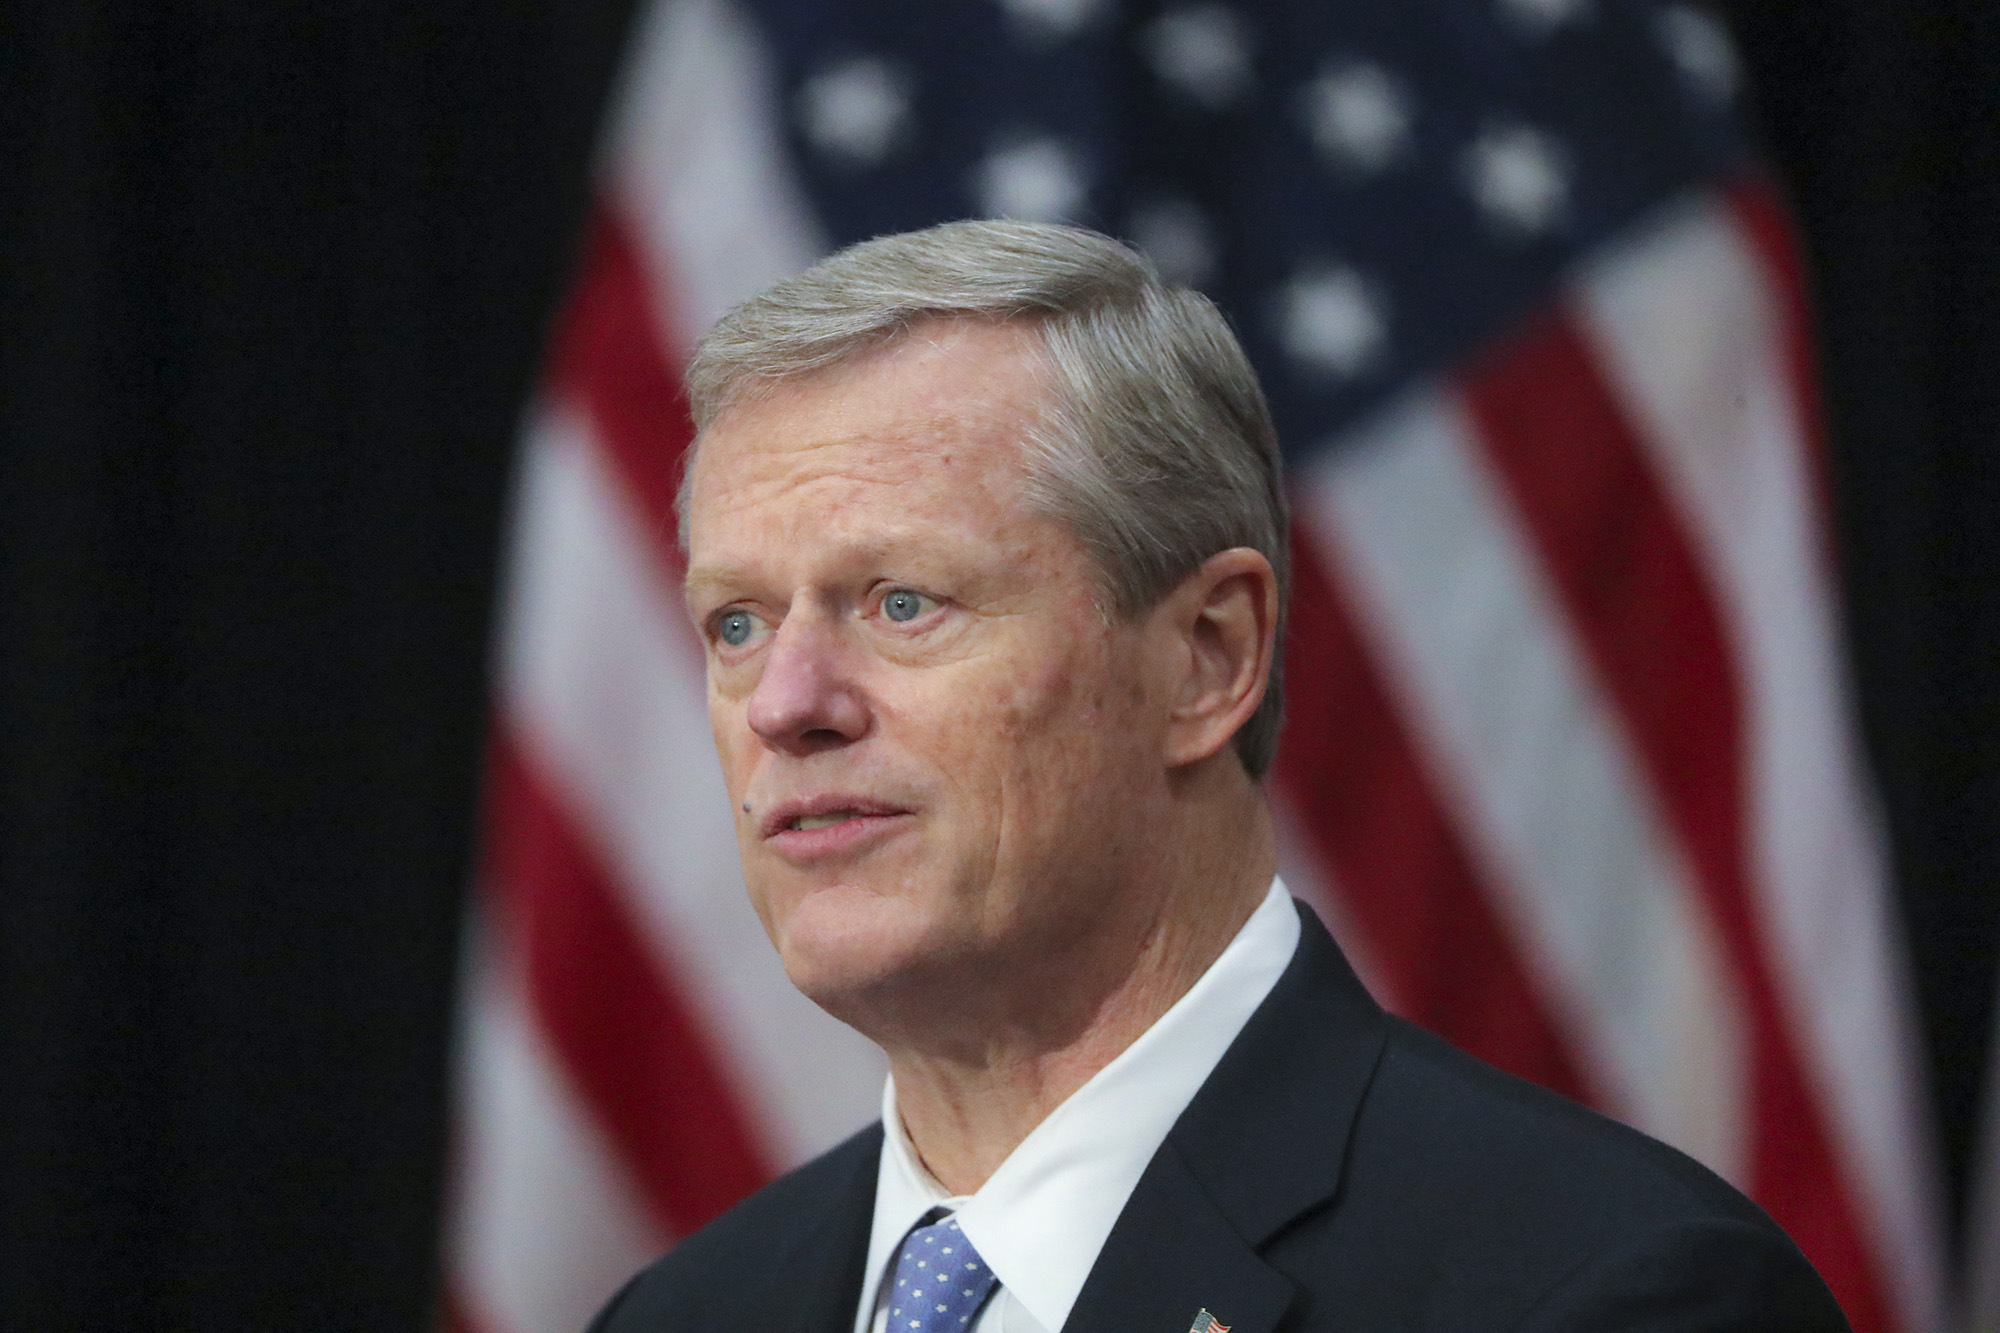 Governor Charlie Baker speaks about the mask mandate at the Massachusetts State House in Boston, on November 3.